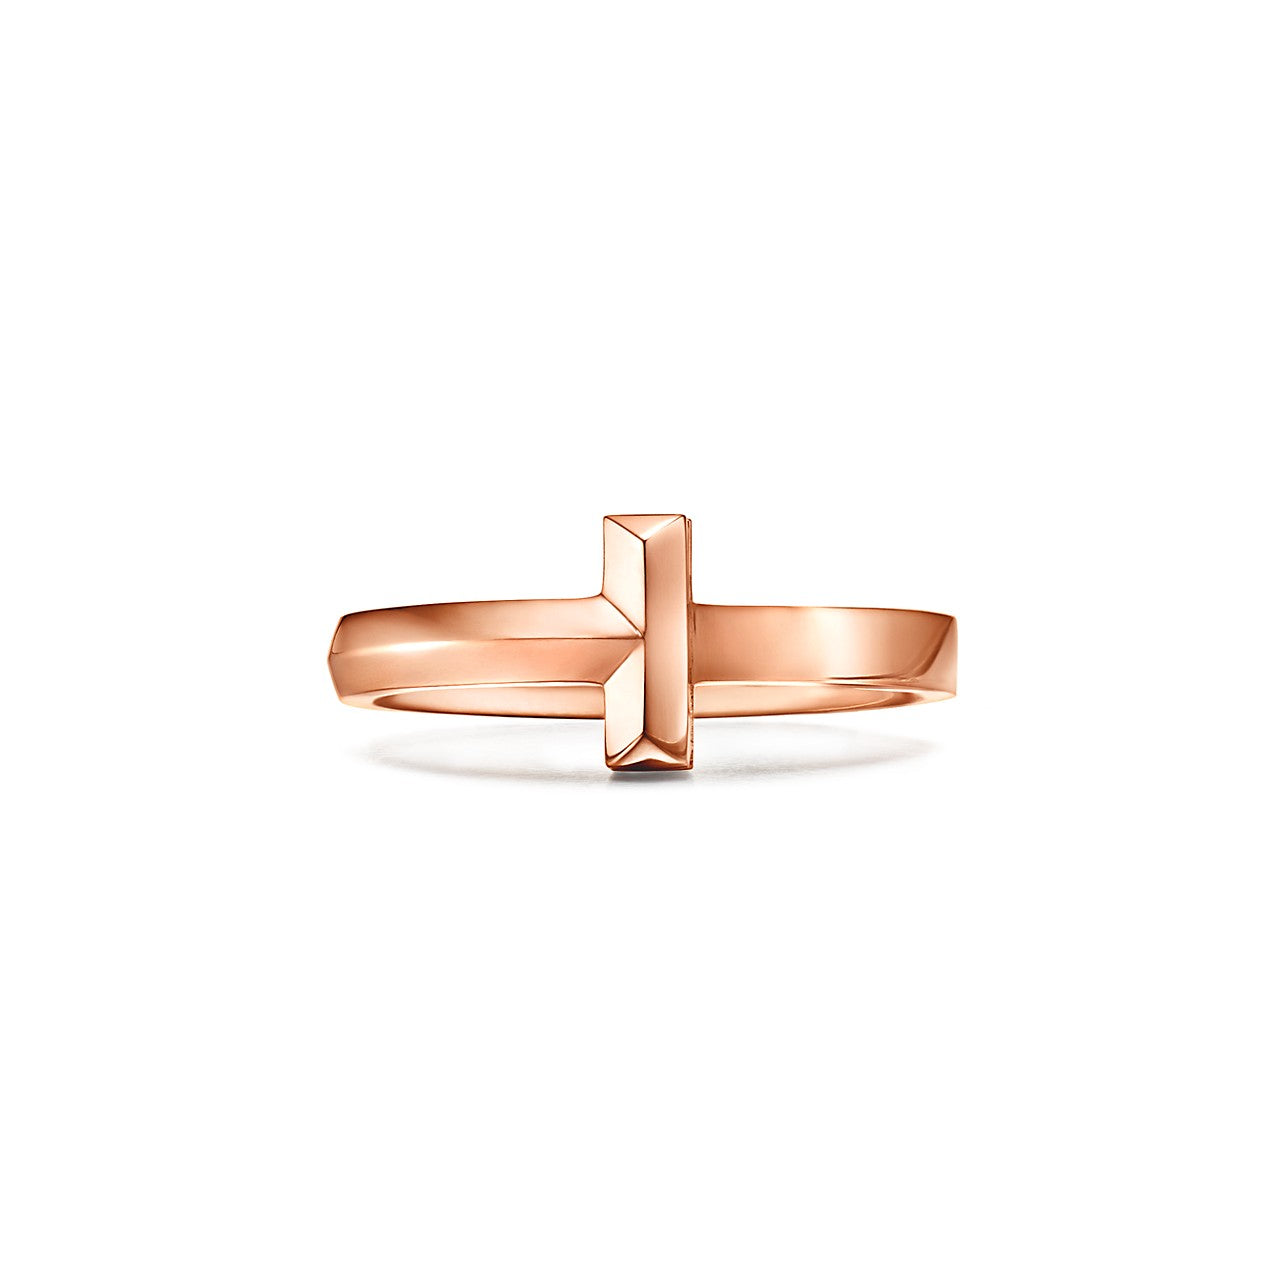 Tiffany T1 narrow ring in 18k rose gold